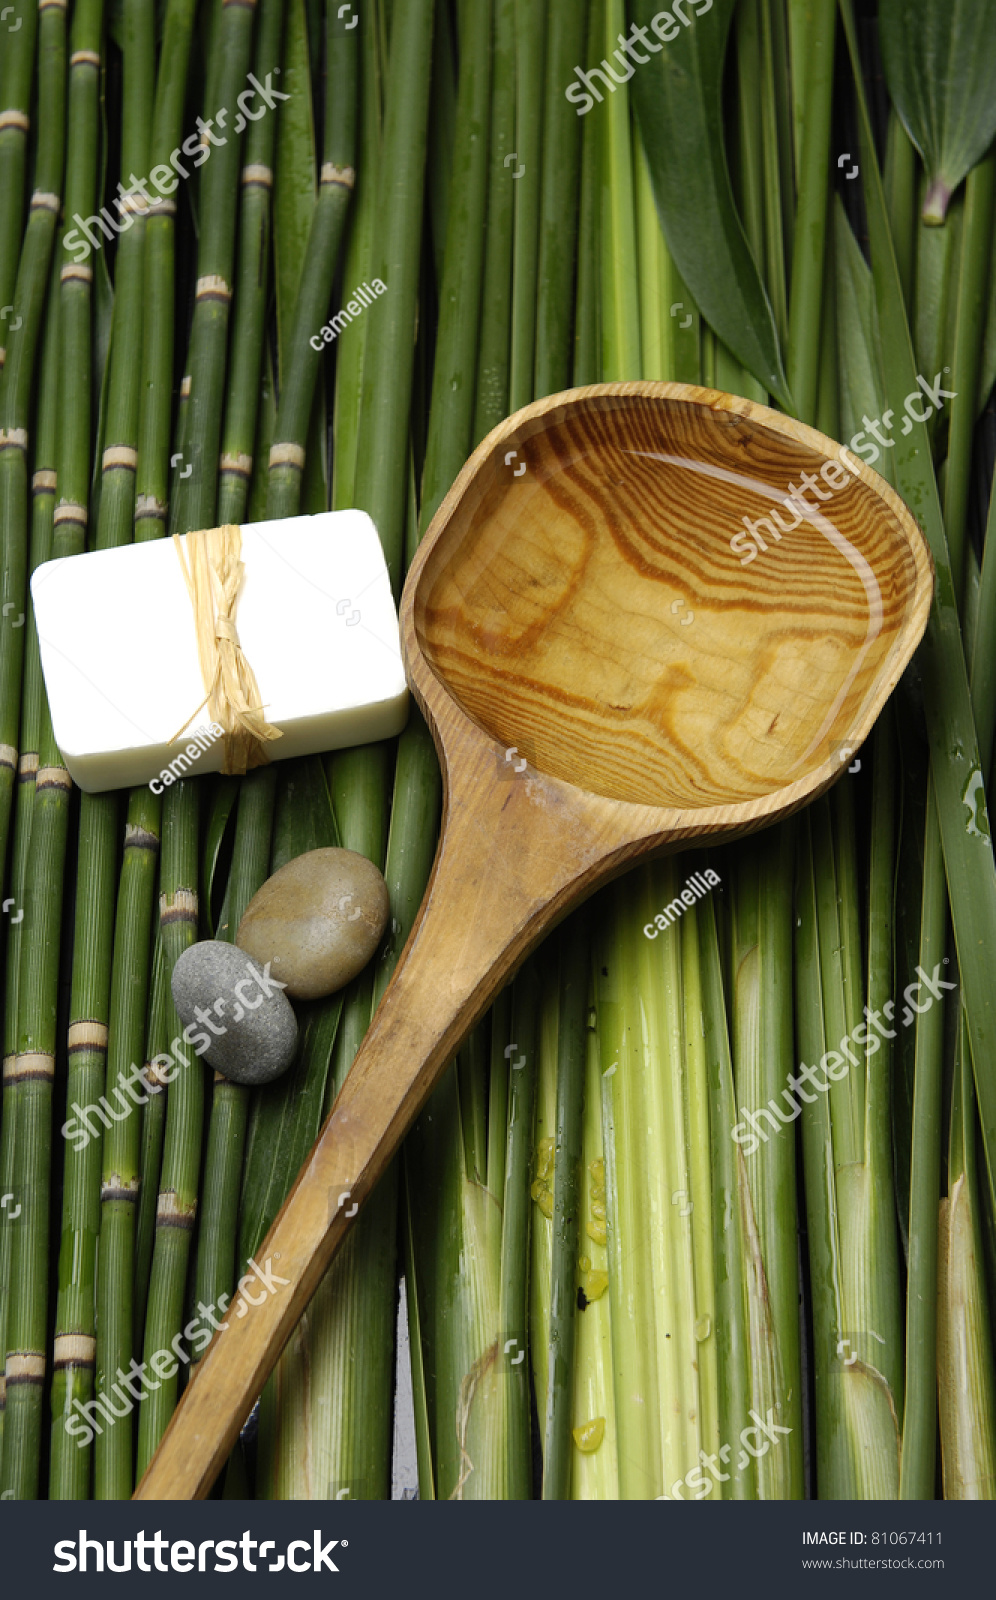 Wooden Spoon And Bath Soap And Stones With On Green Plant